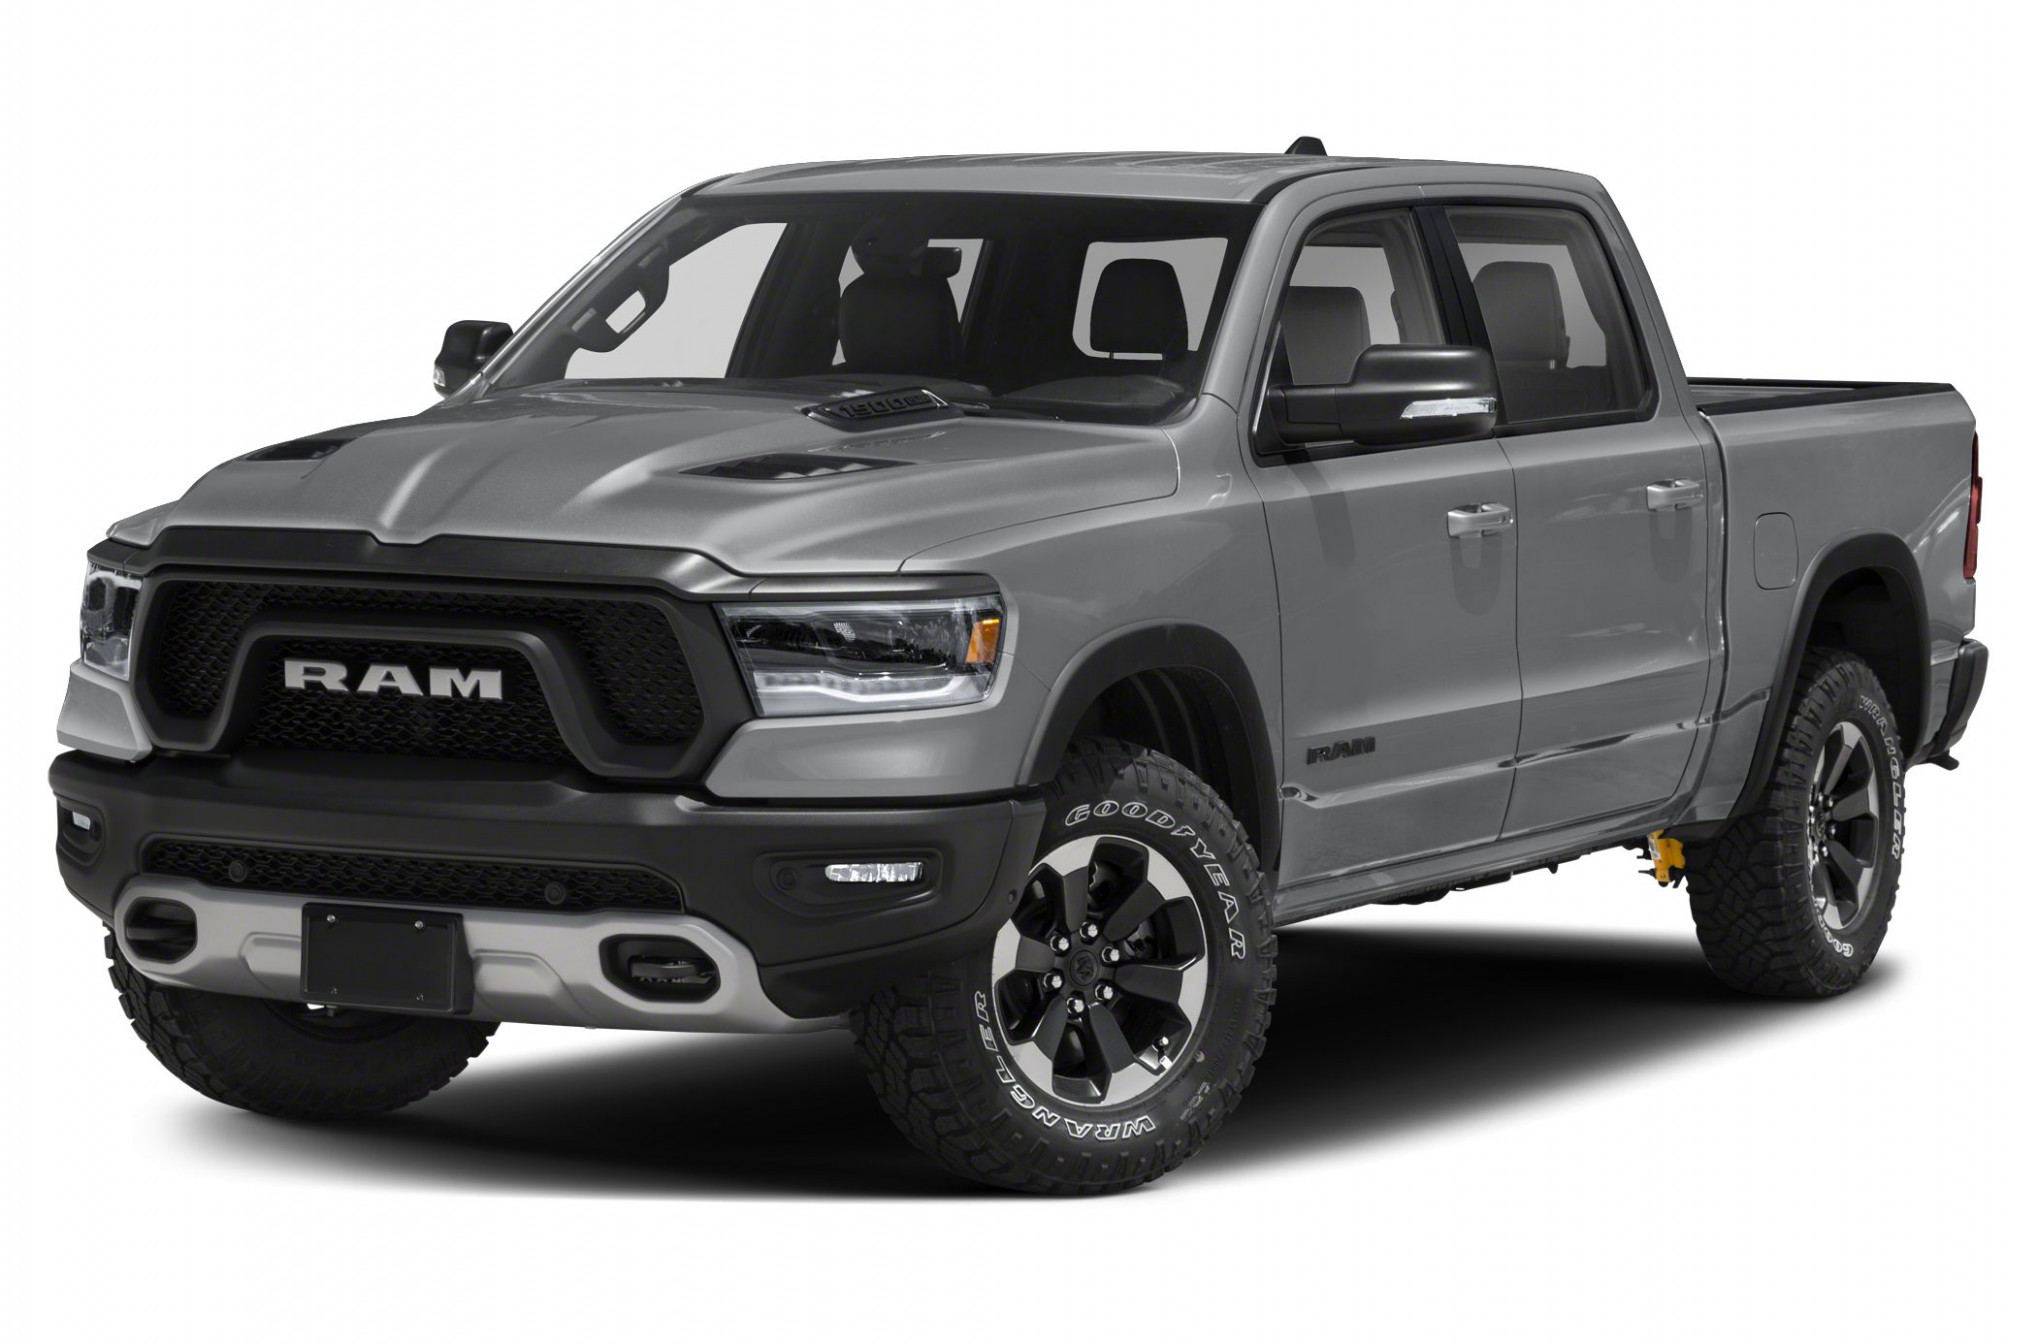 8 RAM 8 Rebel 8x8 Crew Cab 188.8 in. WB Pictures